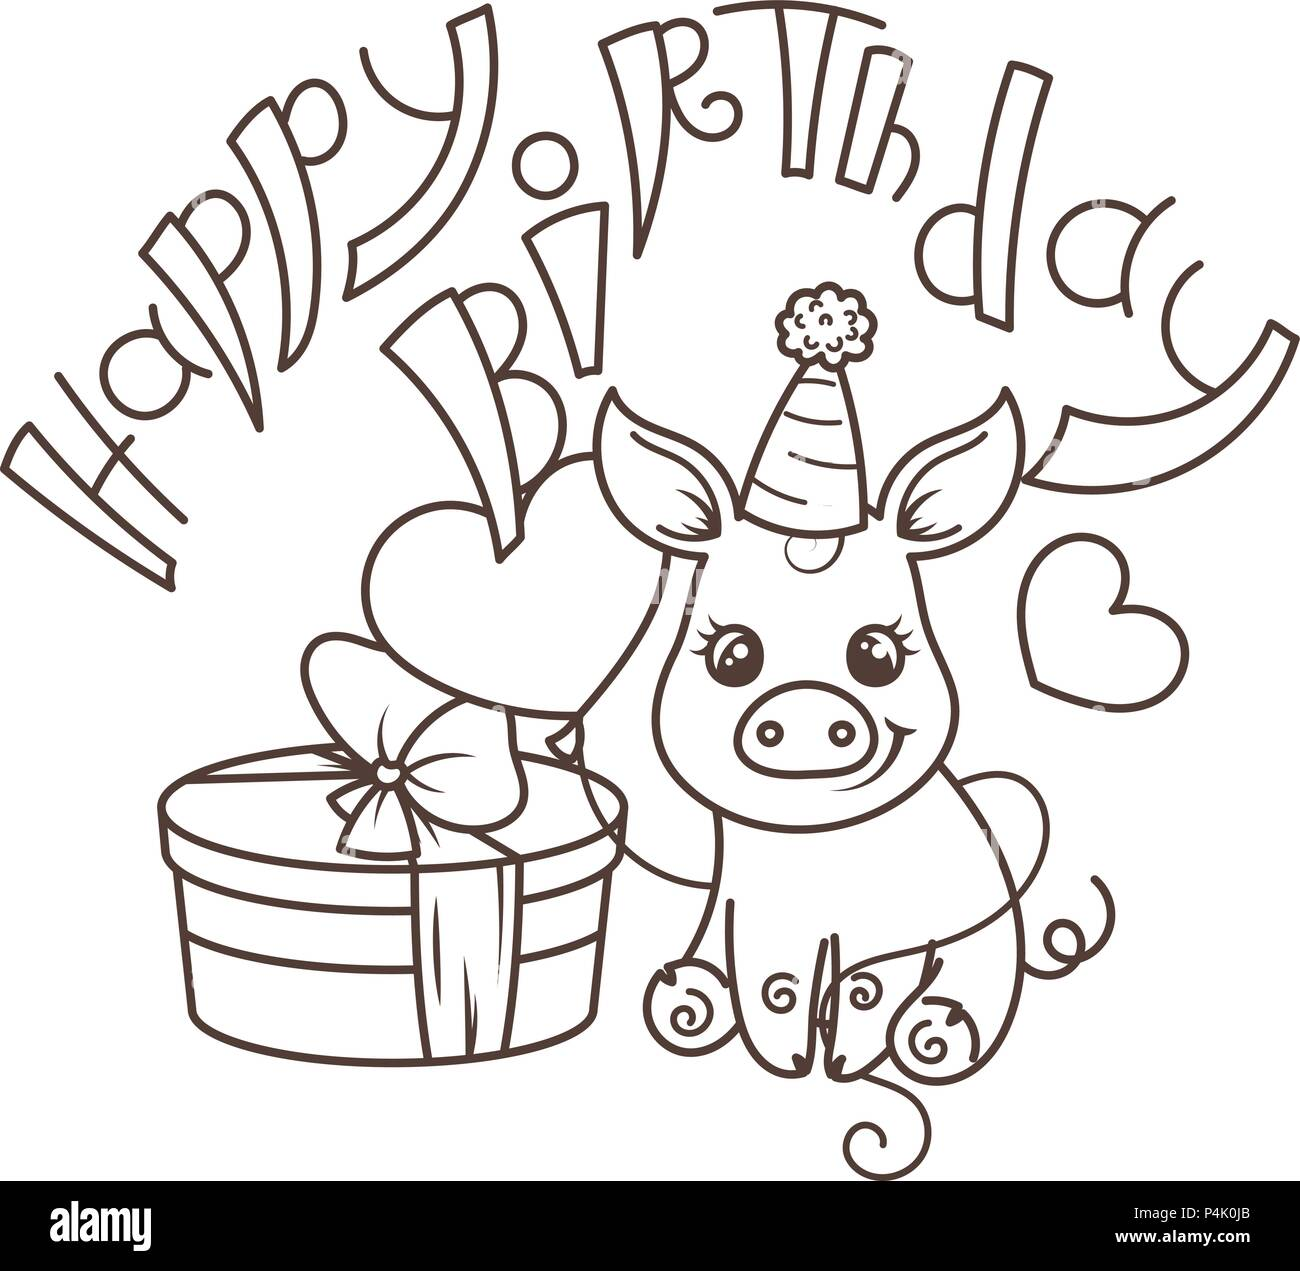 happy birthday cute cartoon baby pig